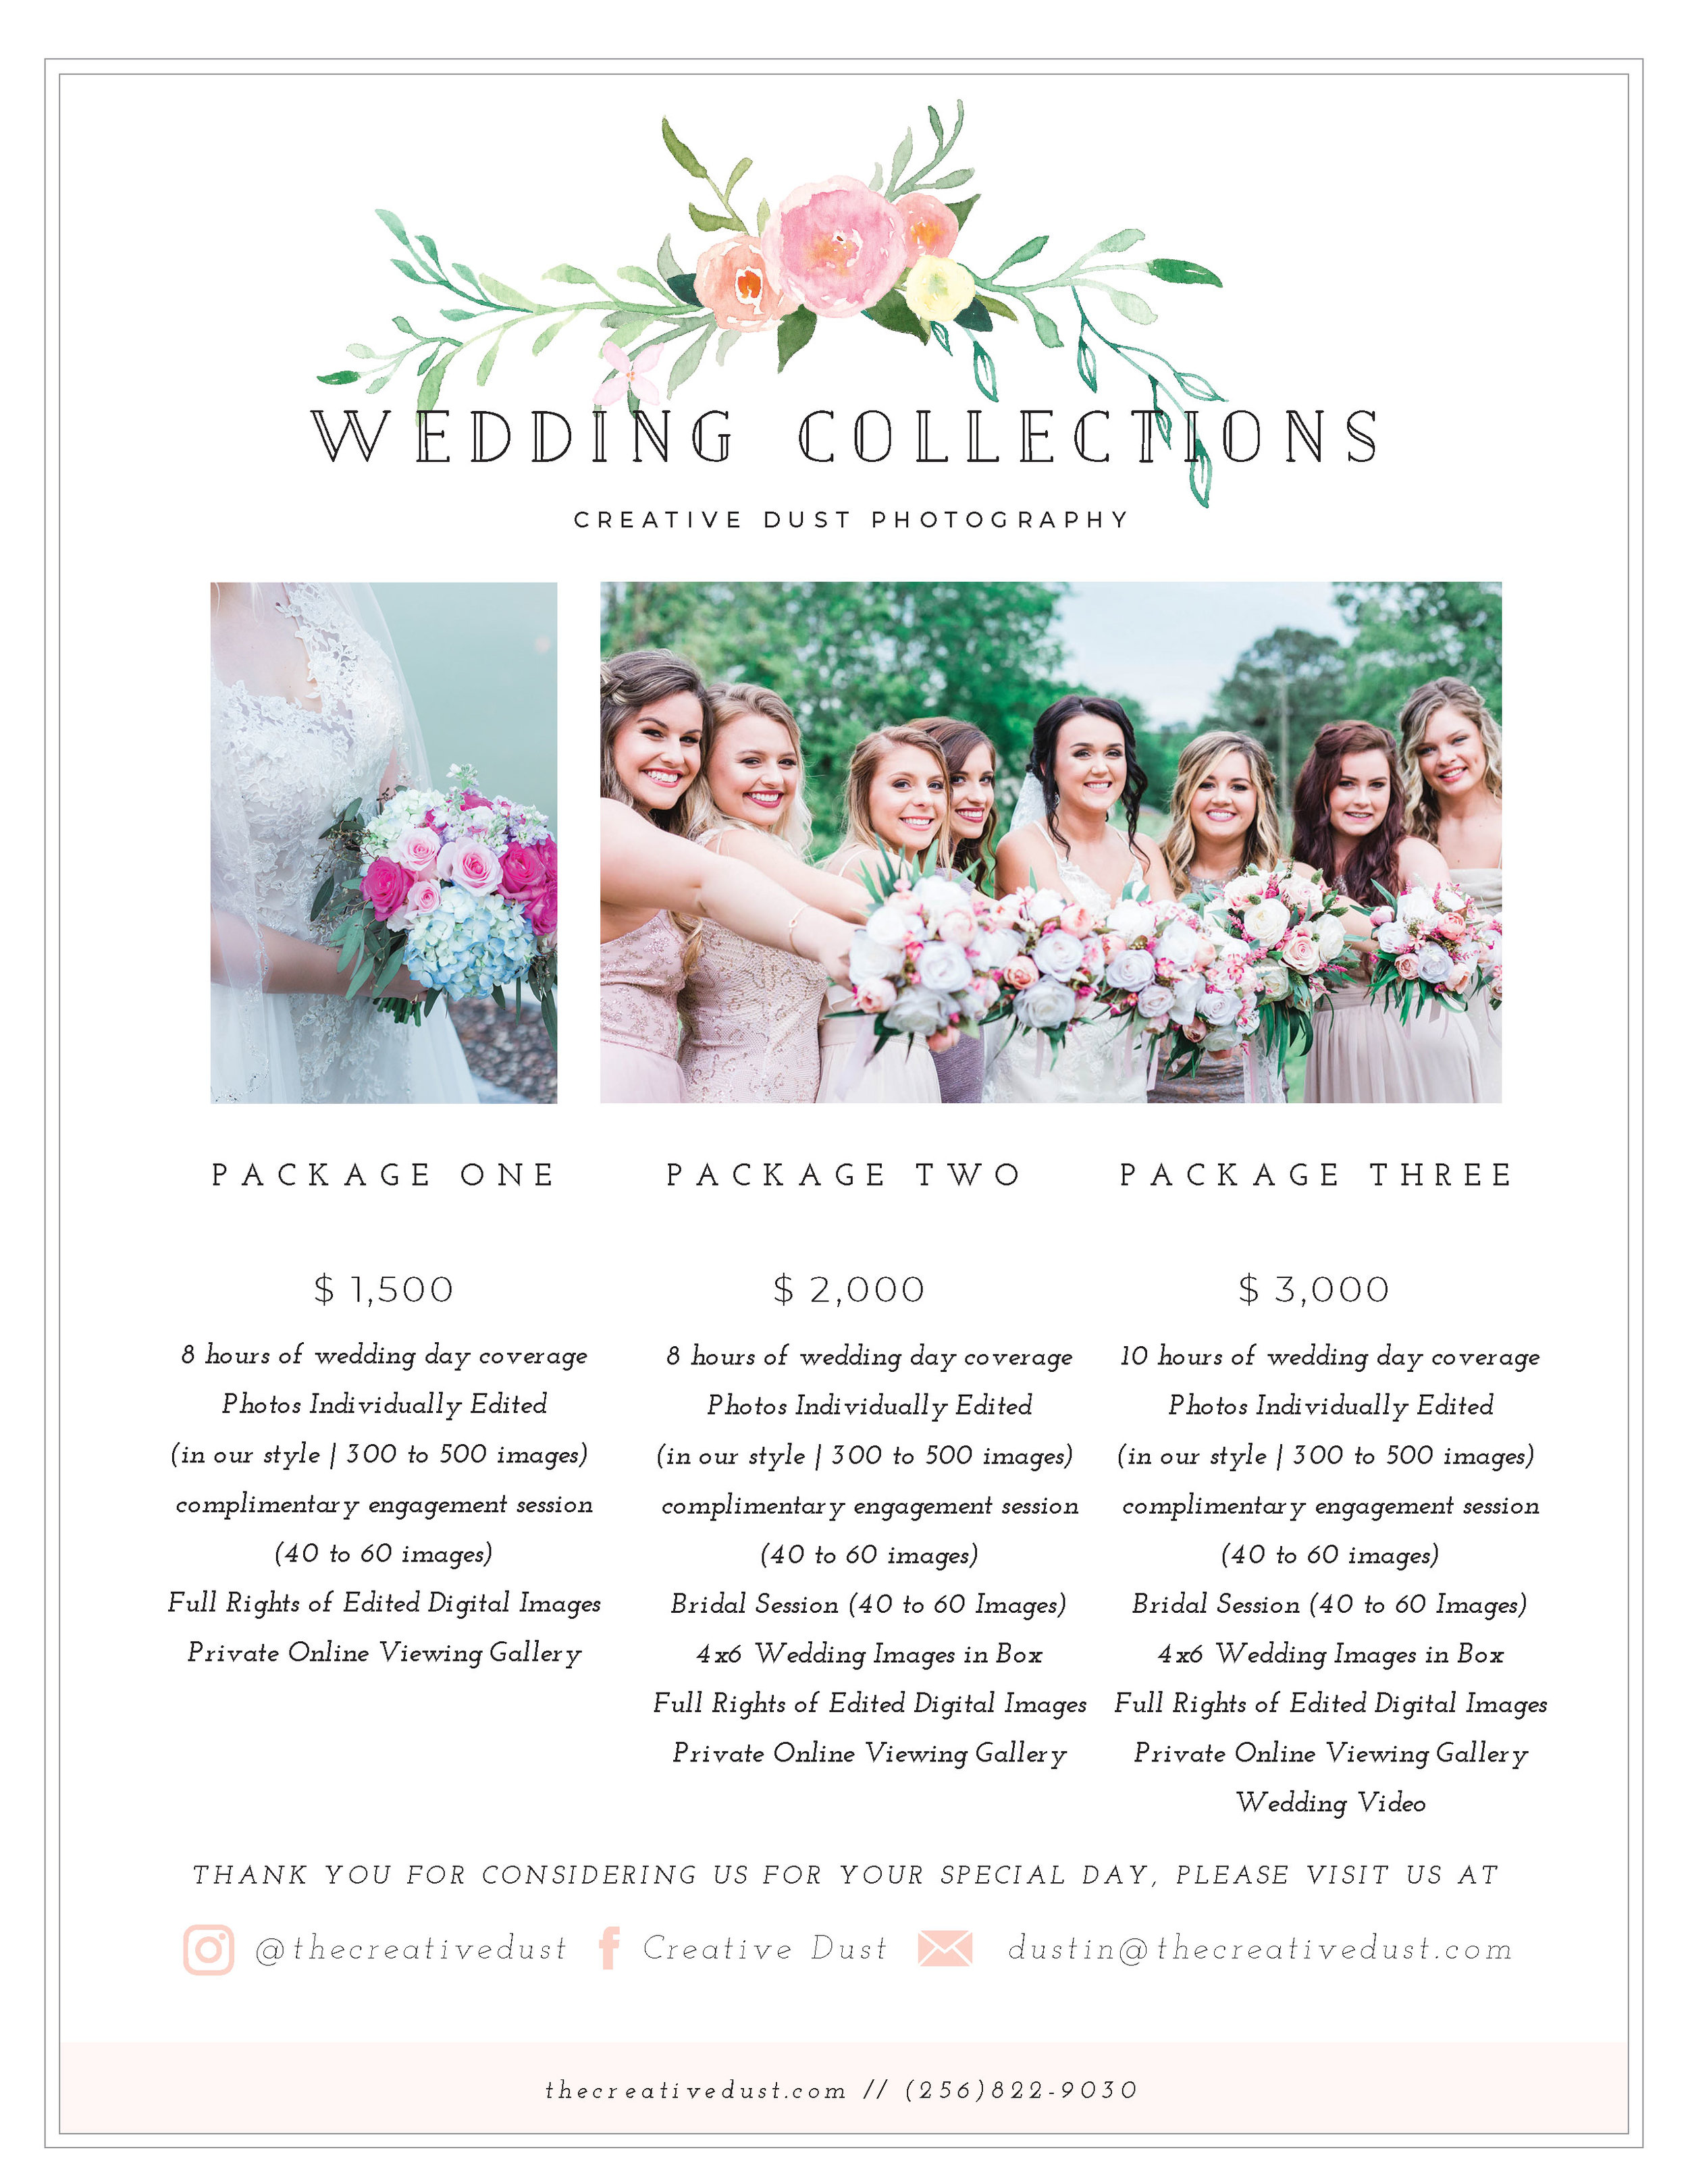 CREATIVE-DUST-Wedding-Collection-Pricing---Pg-1.jpg